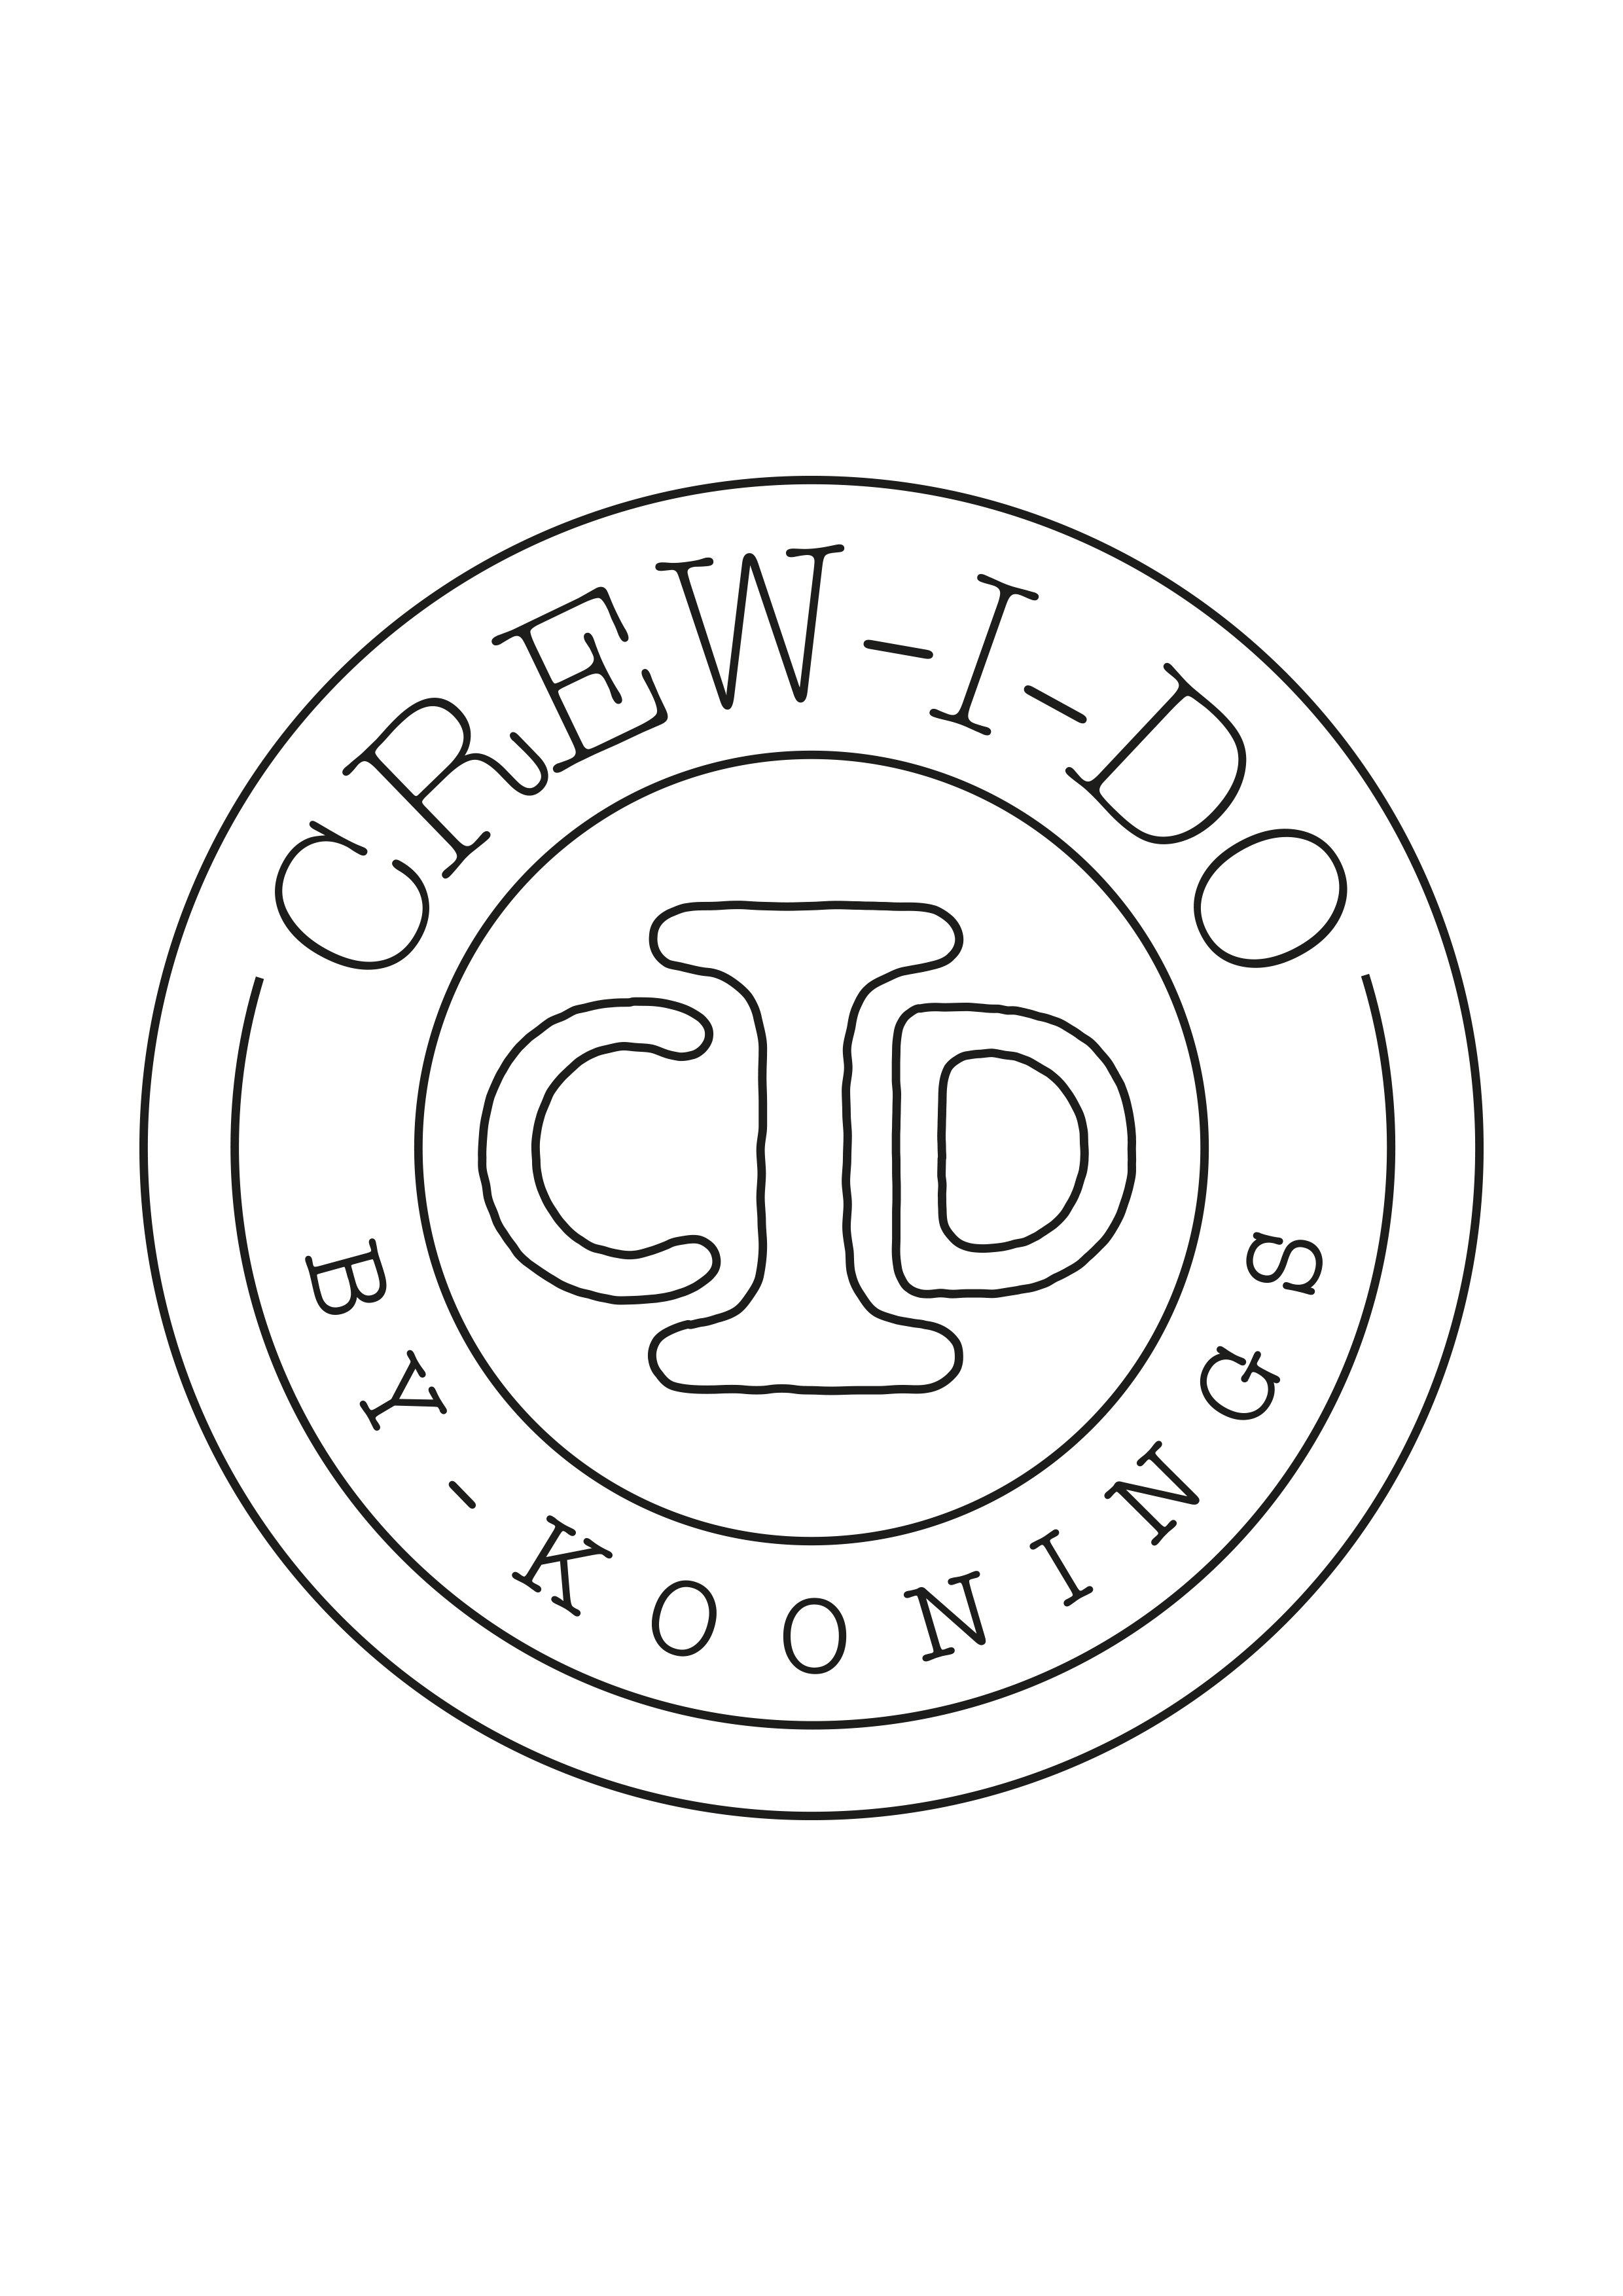 Crew I Do by Koonings